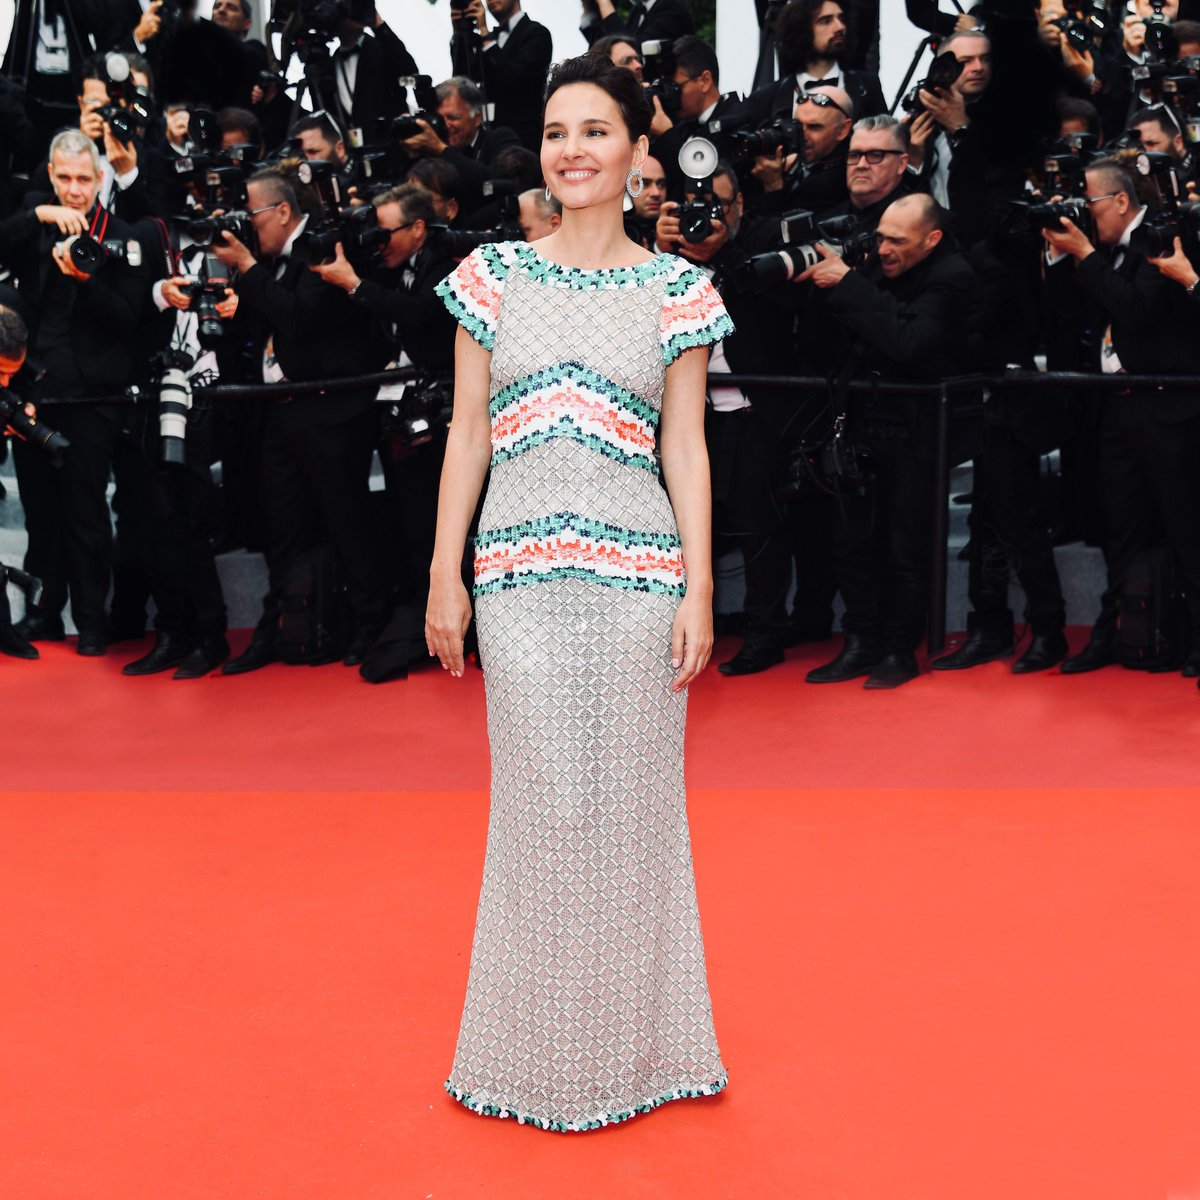 #Cannes2019 opening night — Virginie Ledoyen, a friend of the House and president of the Queer Palm Jury, stepped out for the first night of the Cannes Film Festival on the French Riviera in a #CHANELCruise dress. #CHANELinCannes #CHANELinCinema